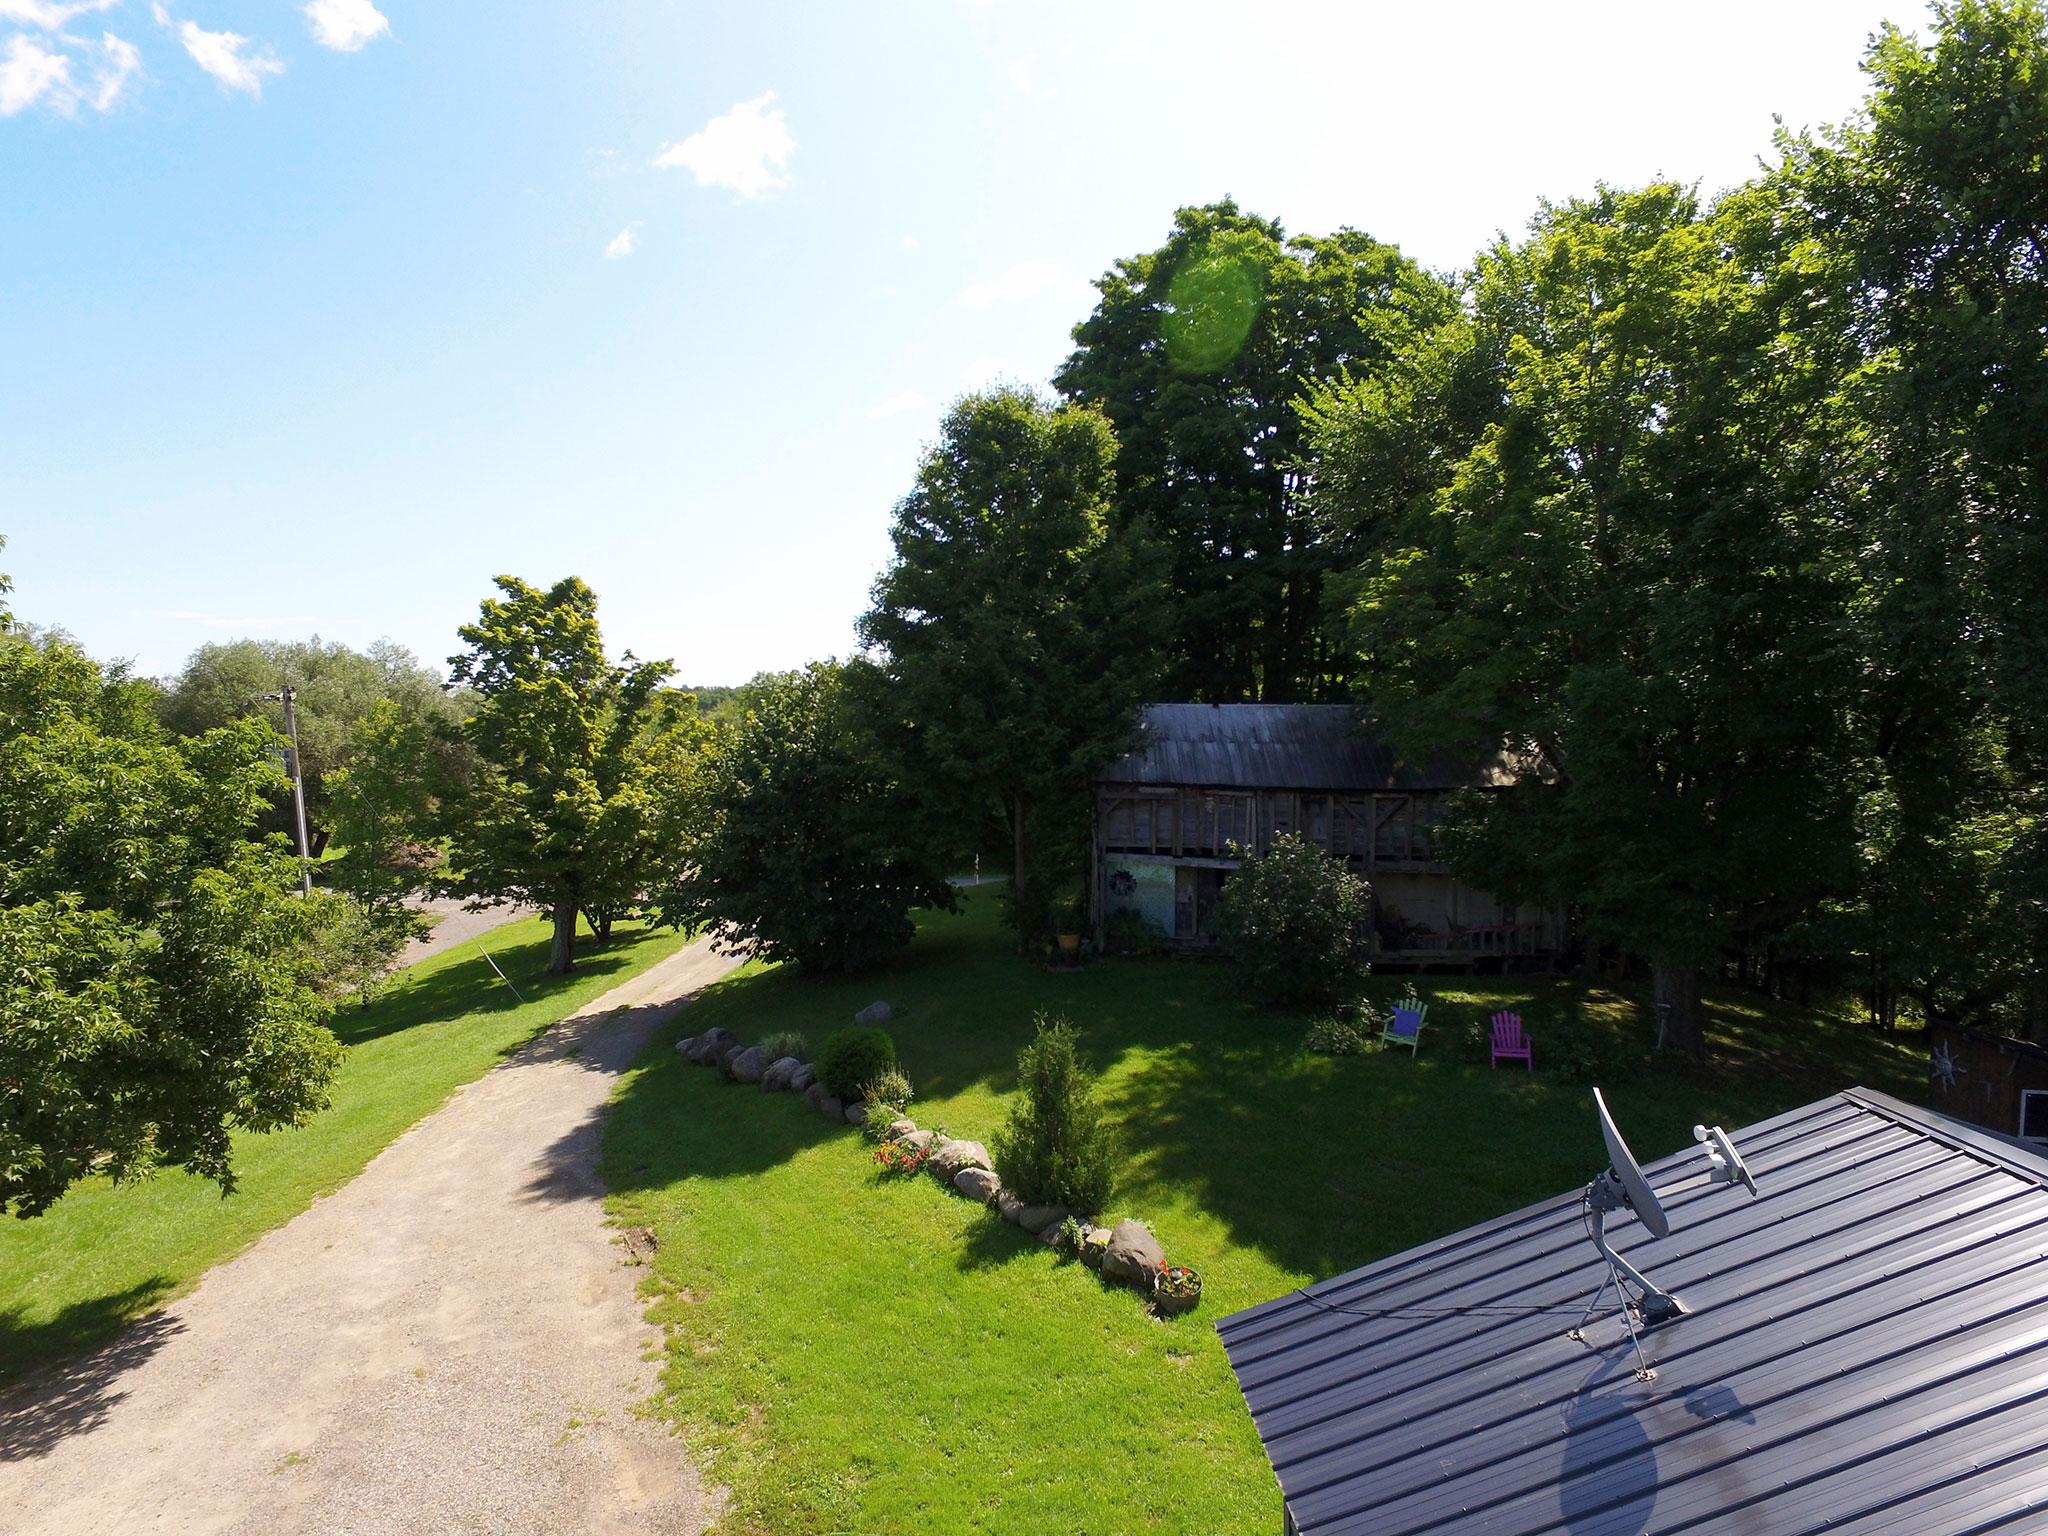 Aerial photo of front yard at property in Canajoharie, New York.